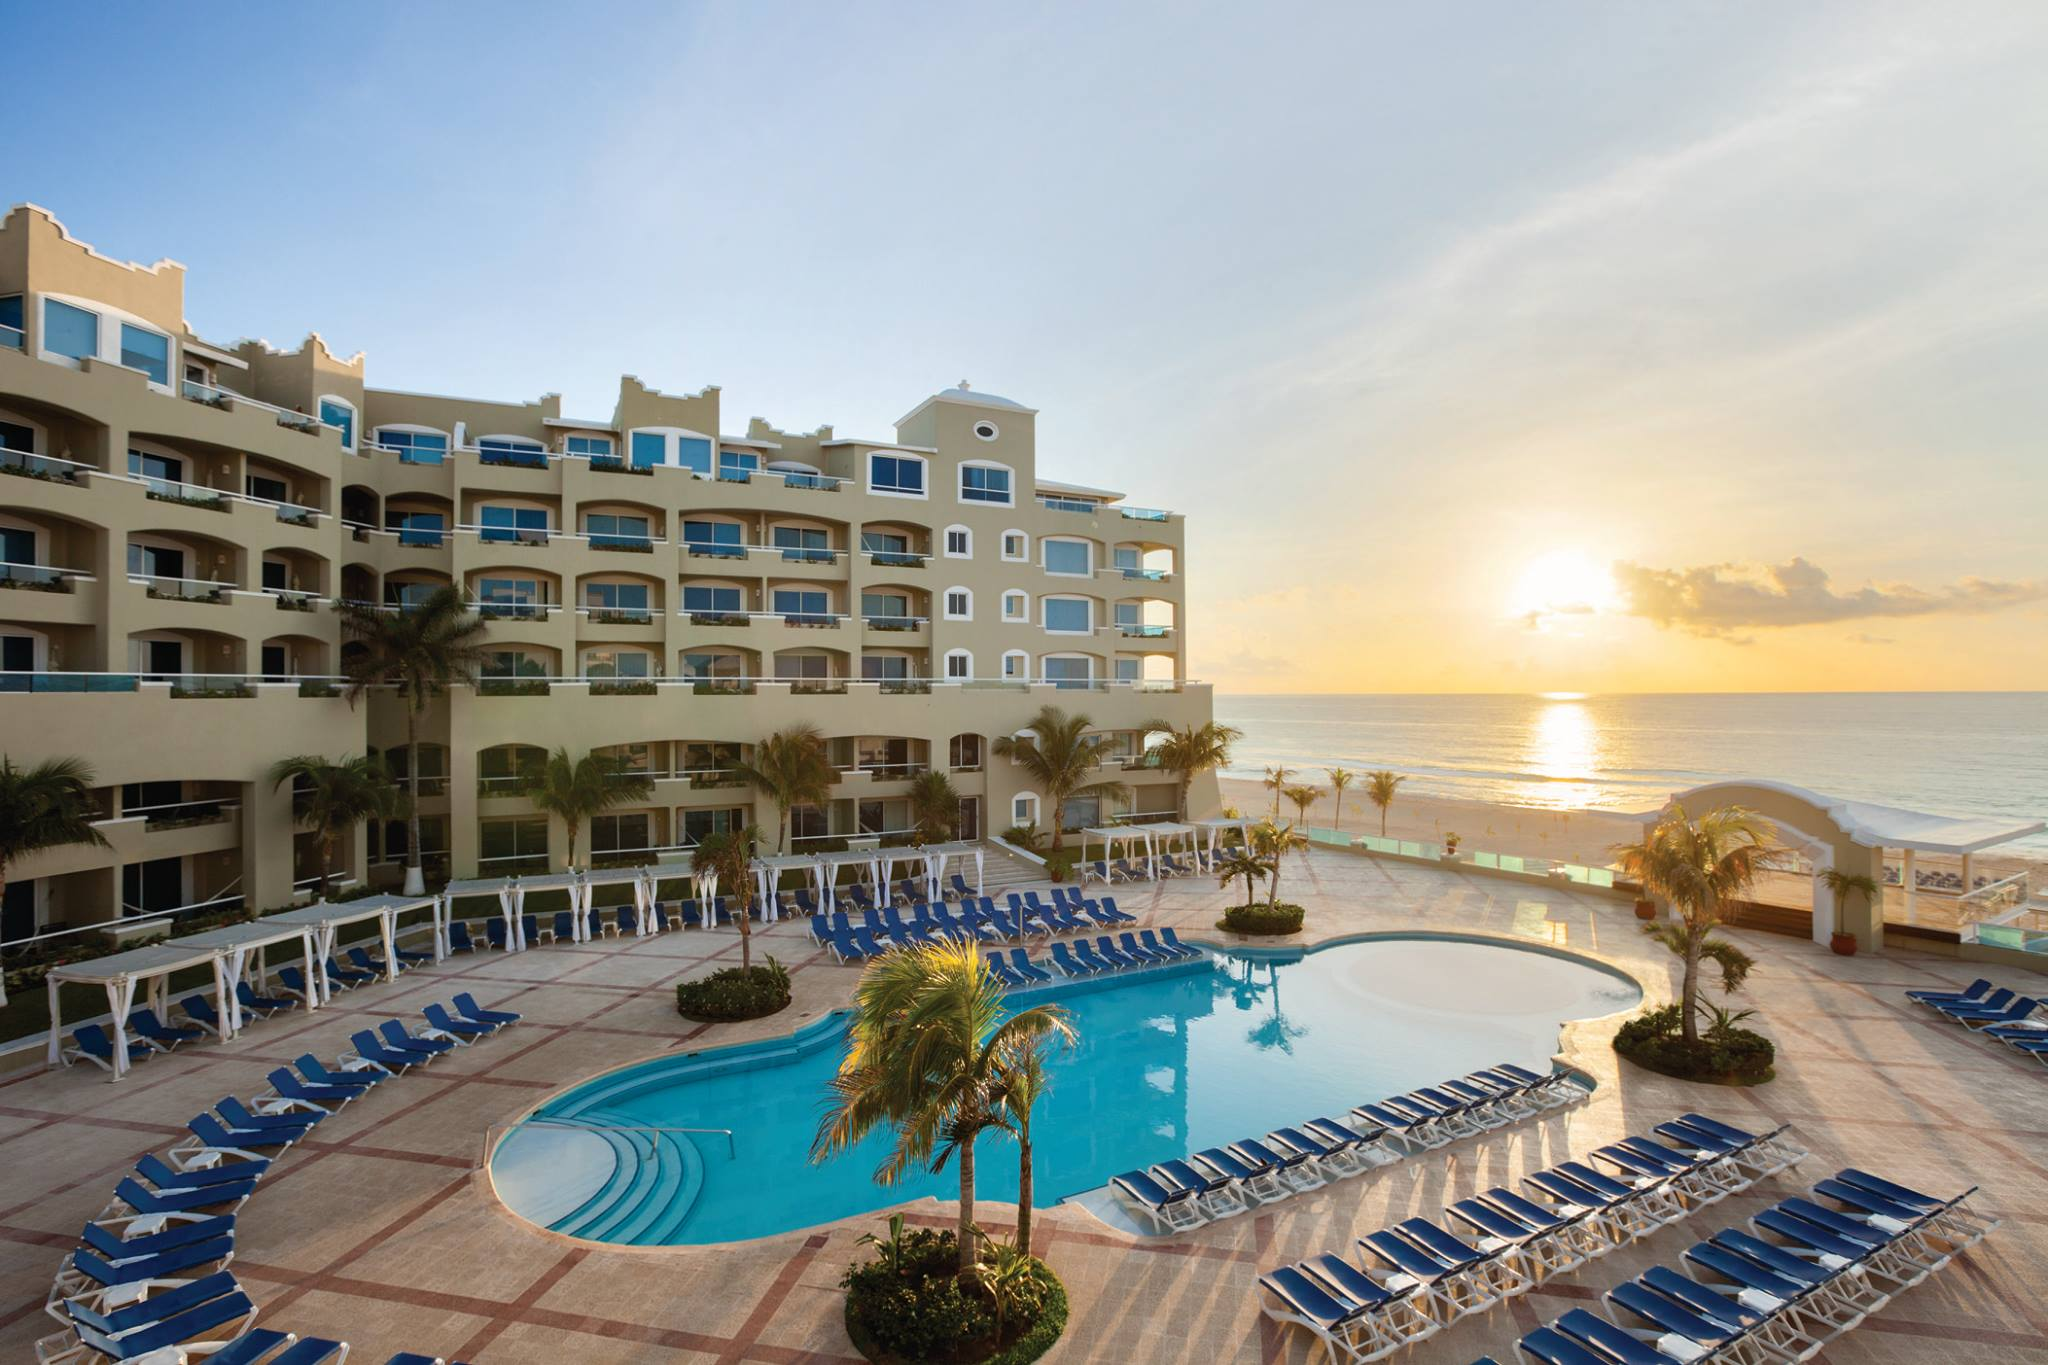 8 best all inclusive resorts where kids stay free huffpost for Top rated mexico all inclusive resorts